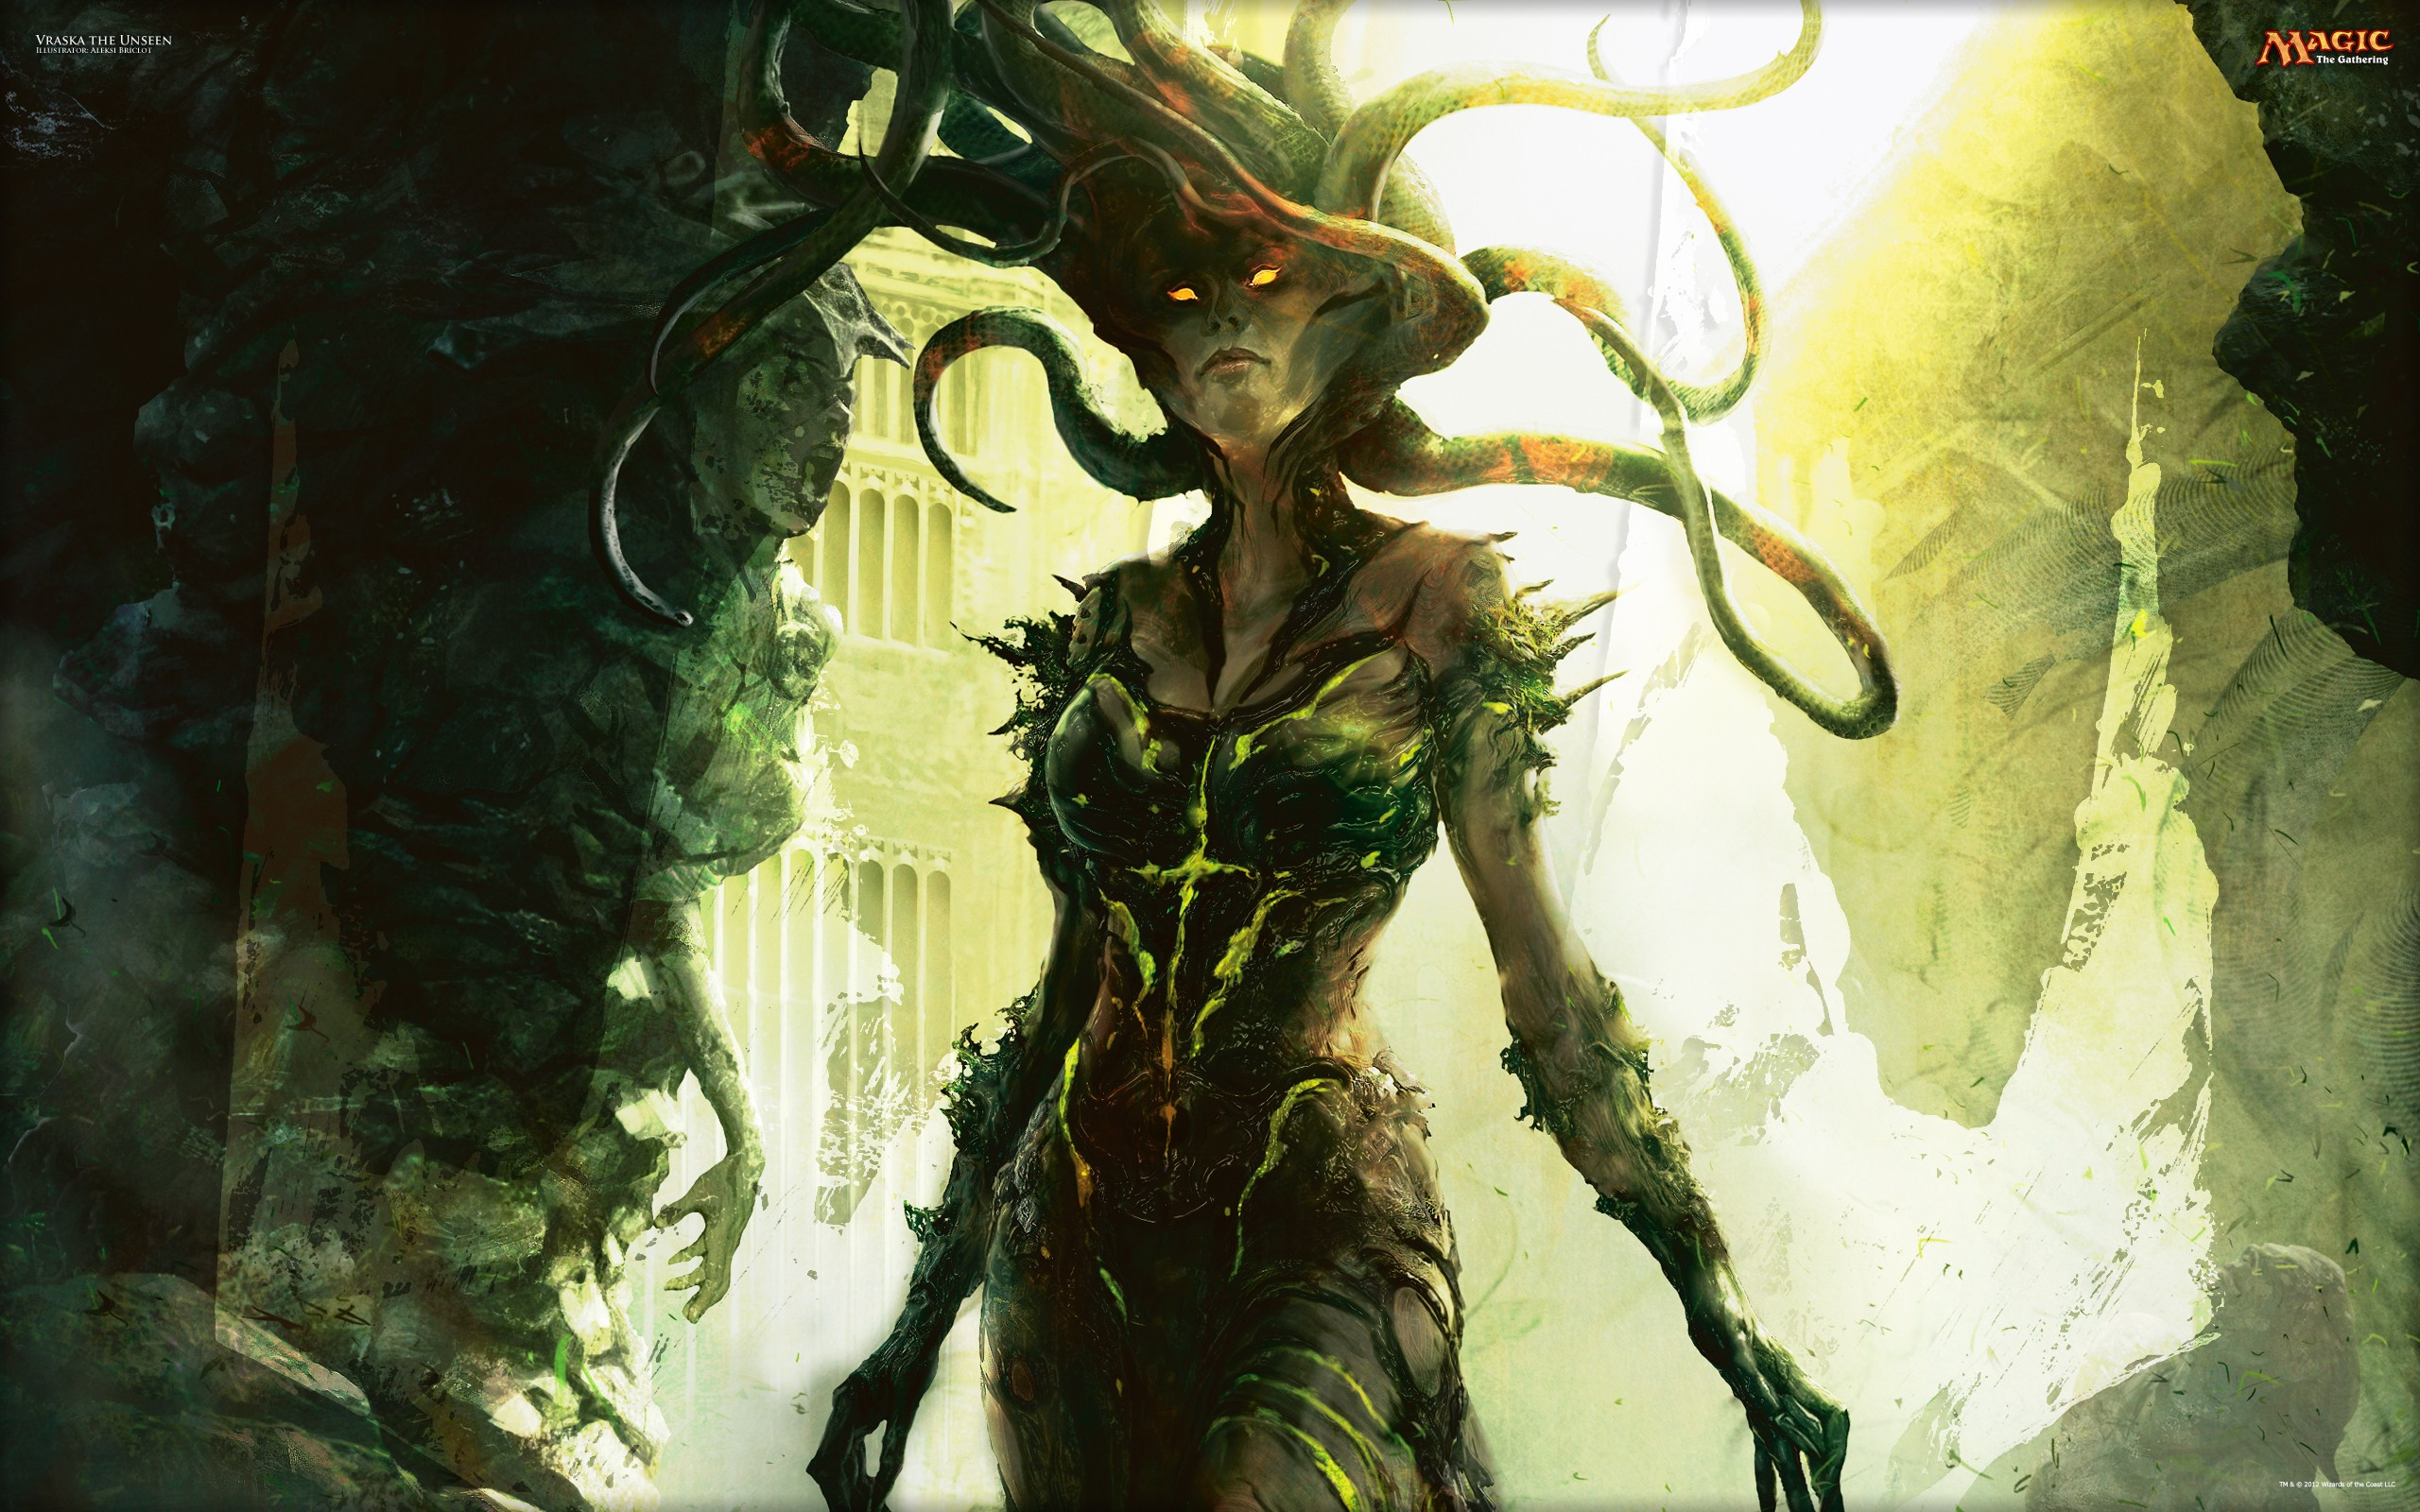 Medusa HD Widescreen Wallpaper Download, Retta Kress